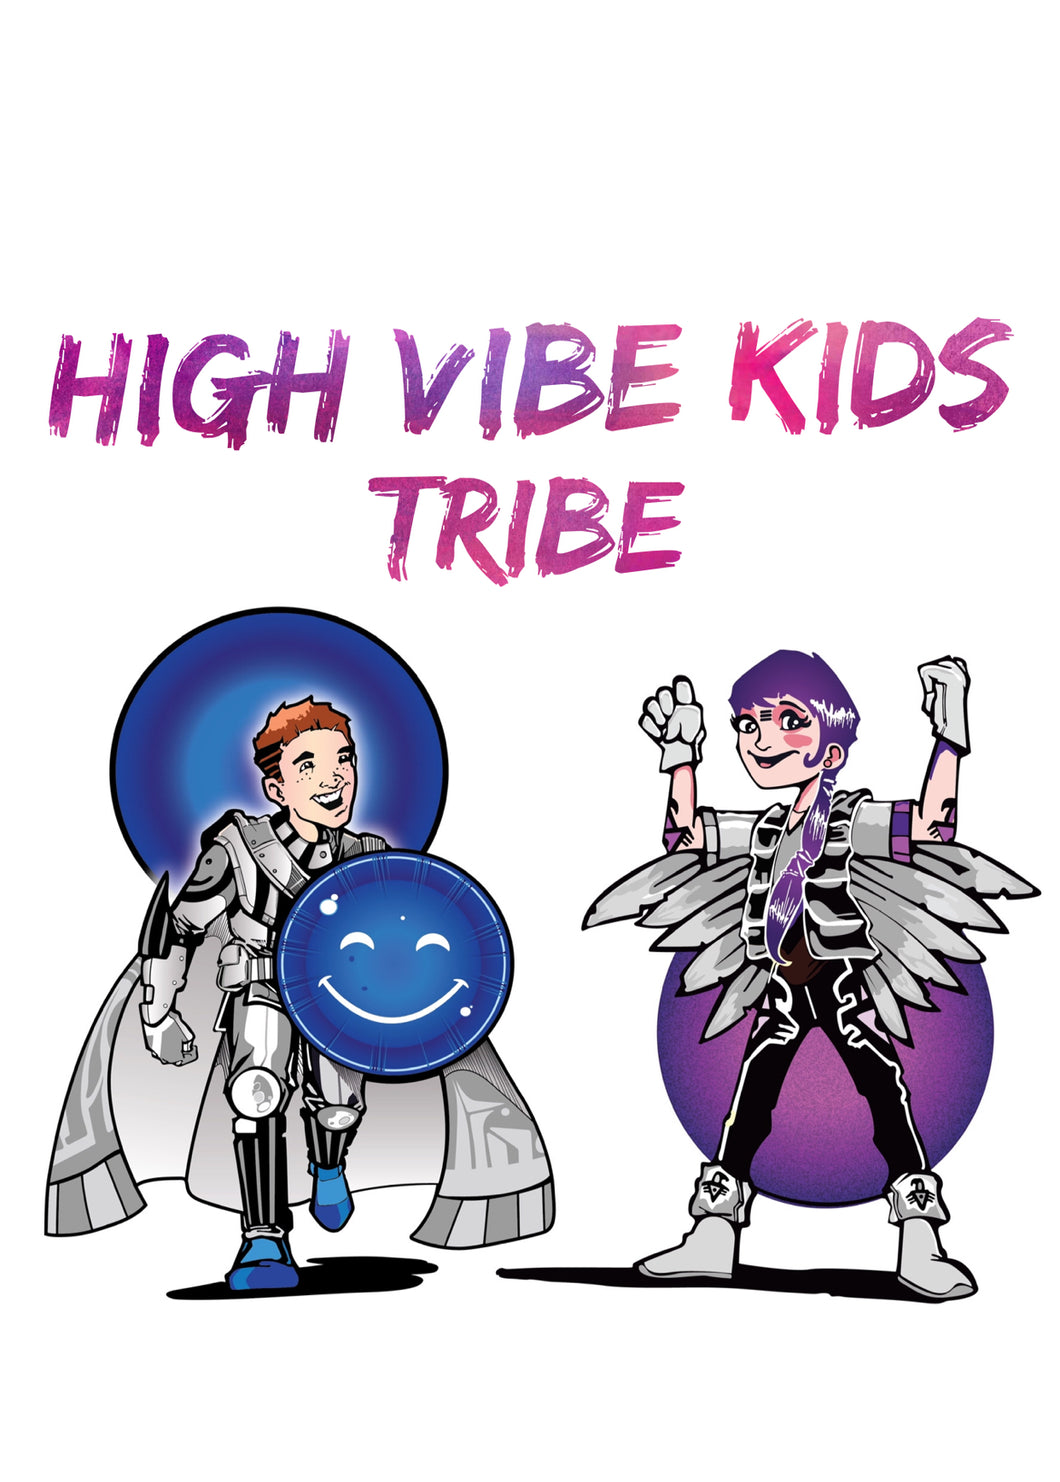 High Vibe Kids Tribe